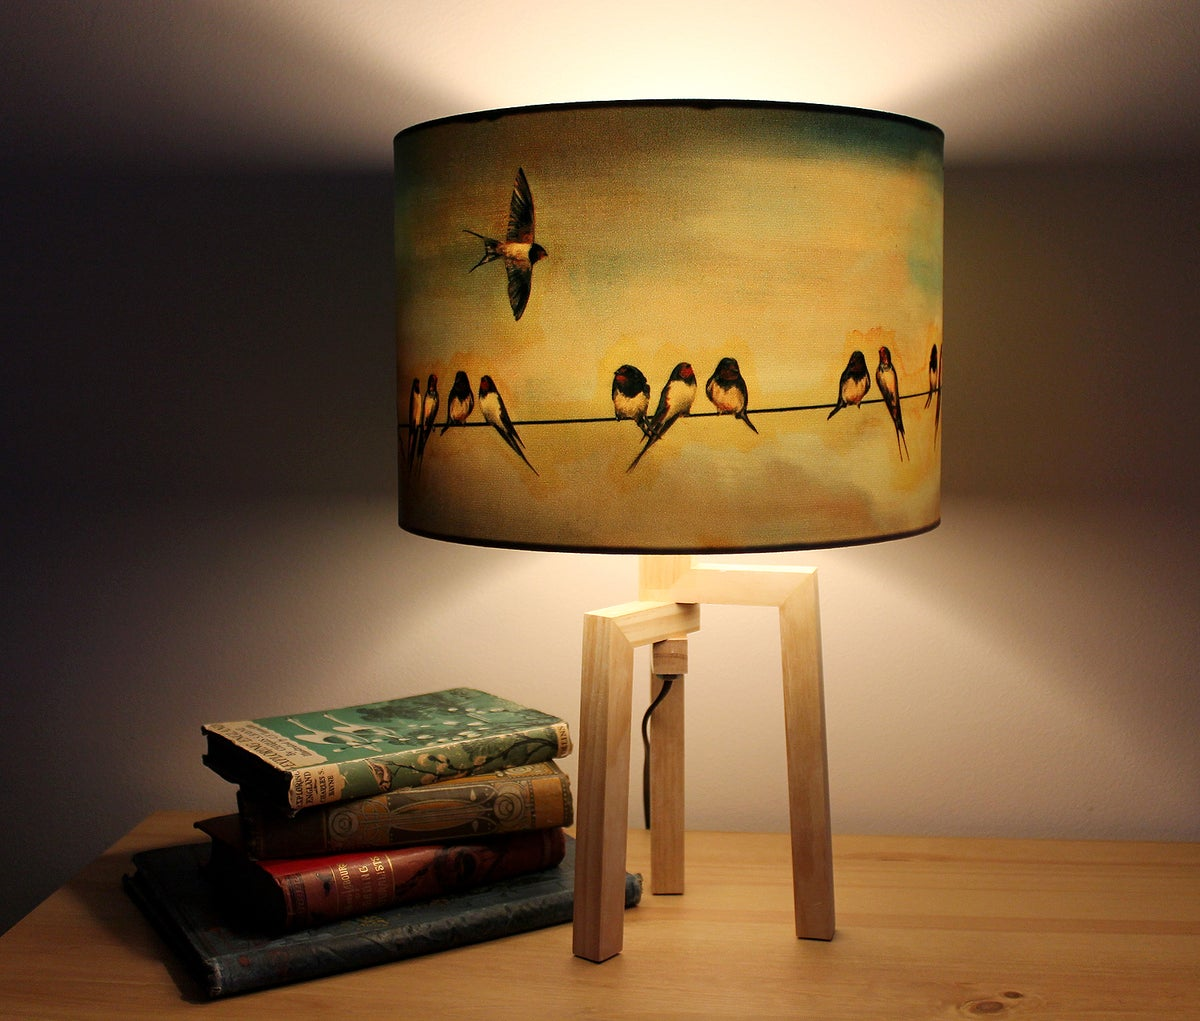 Home Design Ideas Facebook: 'Swallows' Drum Lampshade By Lily Greenwood (30cm, Table